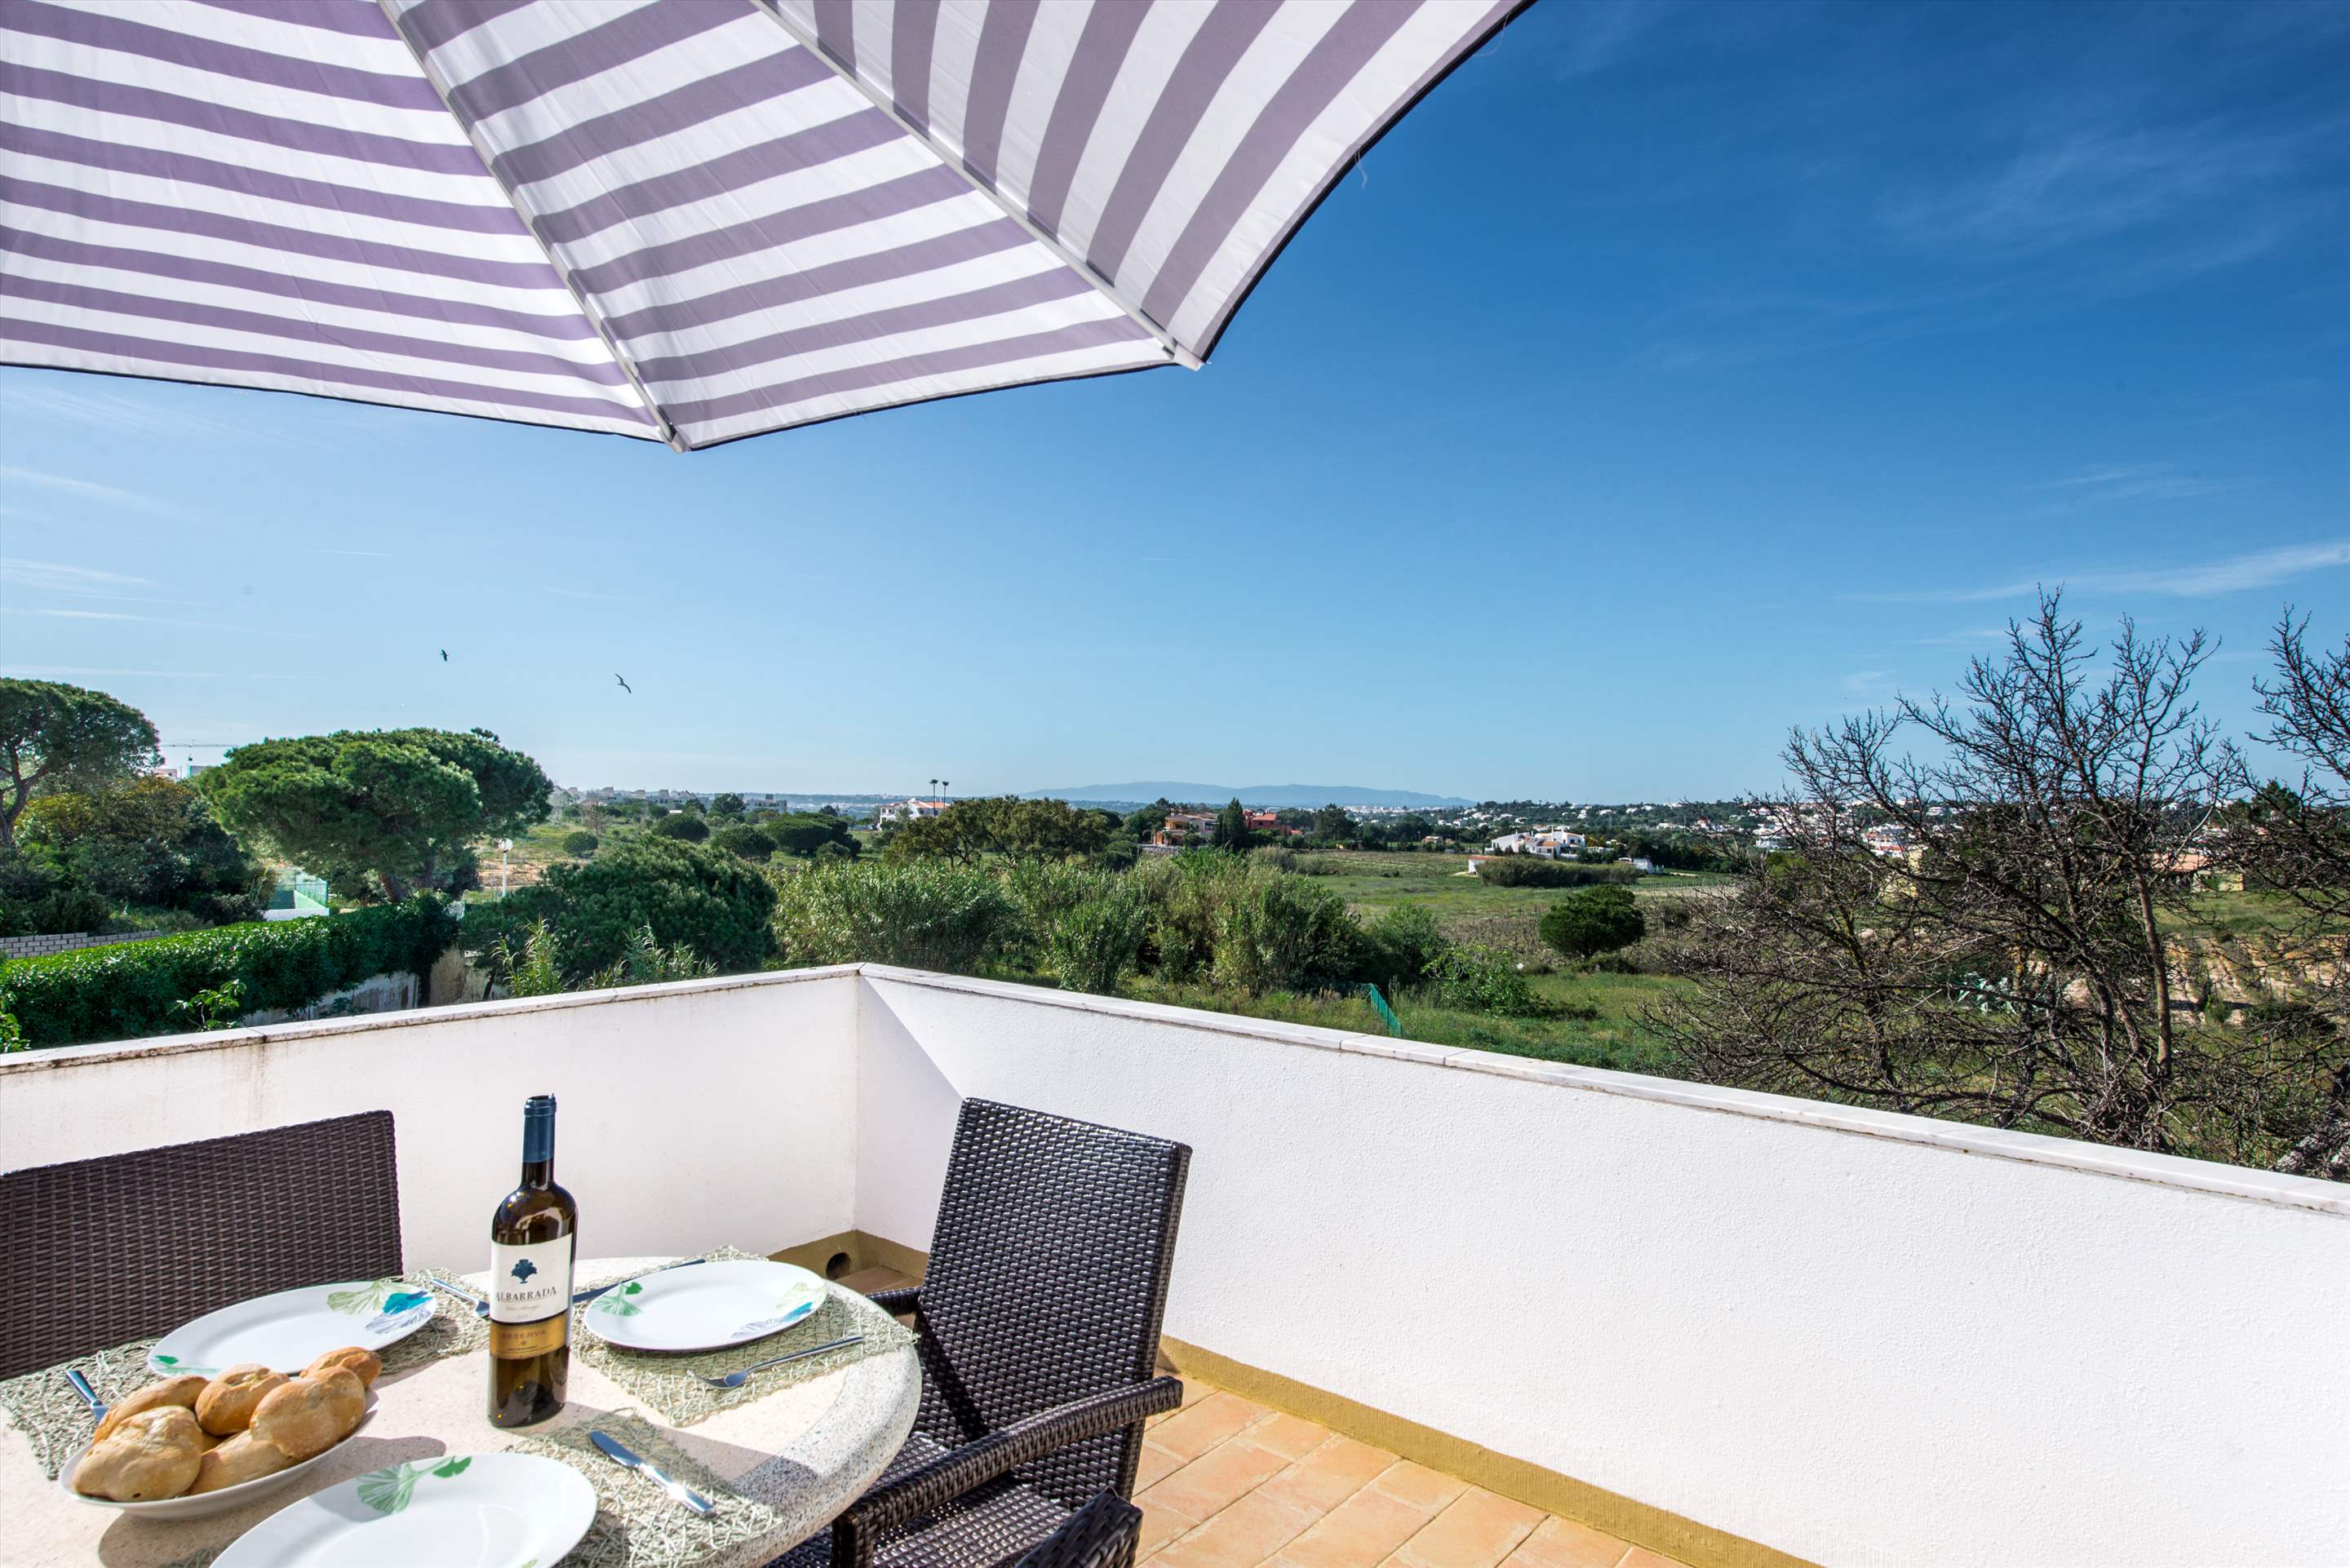 Apt 1E Gale Garden, For 5-6 Persons, 3 bedroom apartment in Gale, Vale da Parra and Guia, Algarve Photo #17